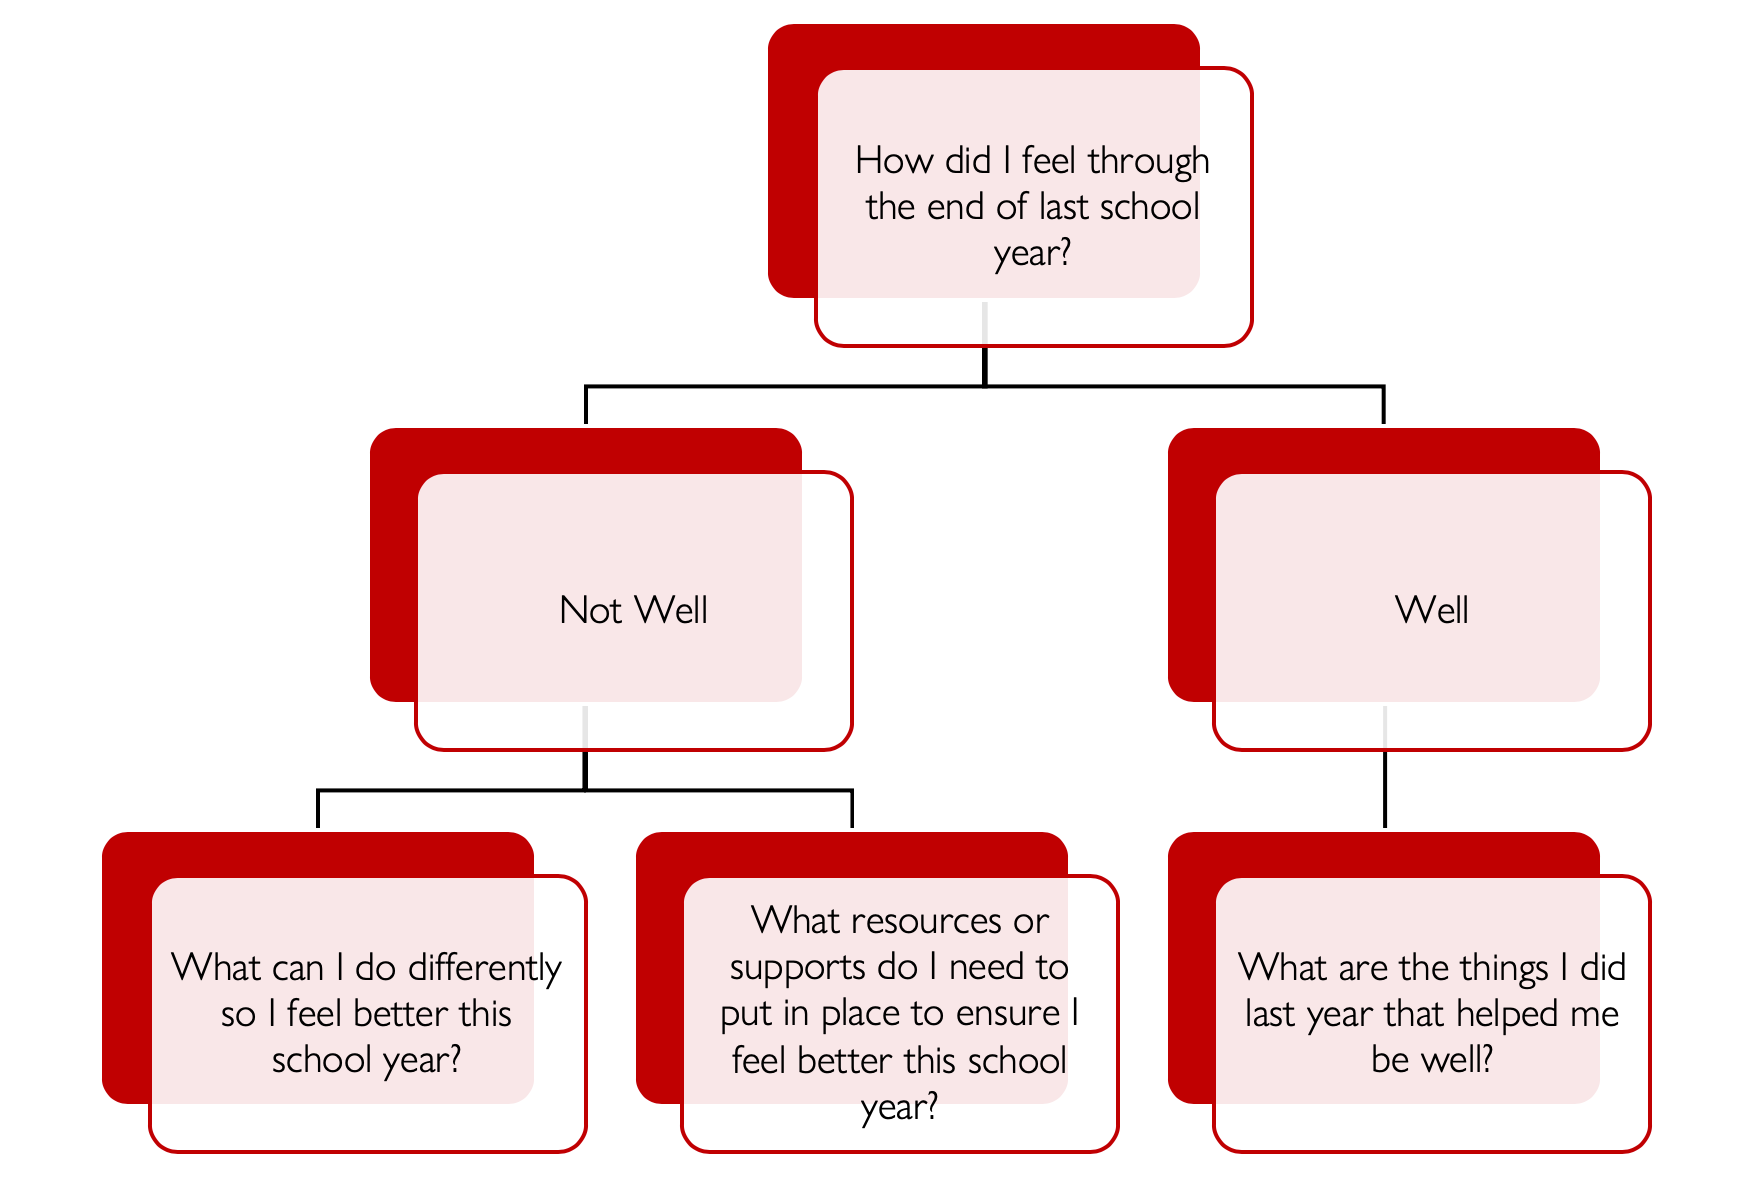 The Well Teacher How was I feeling last year flow chart